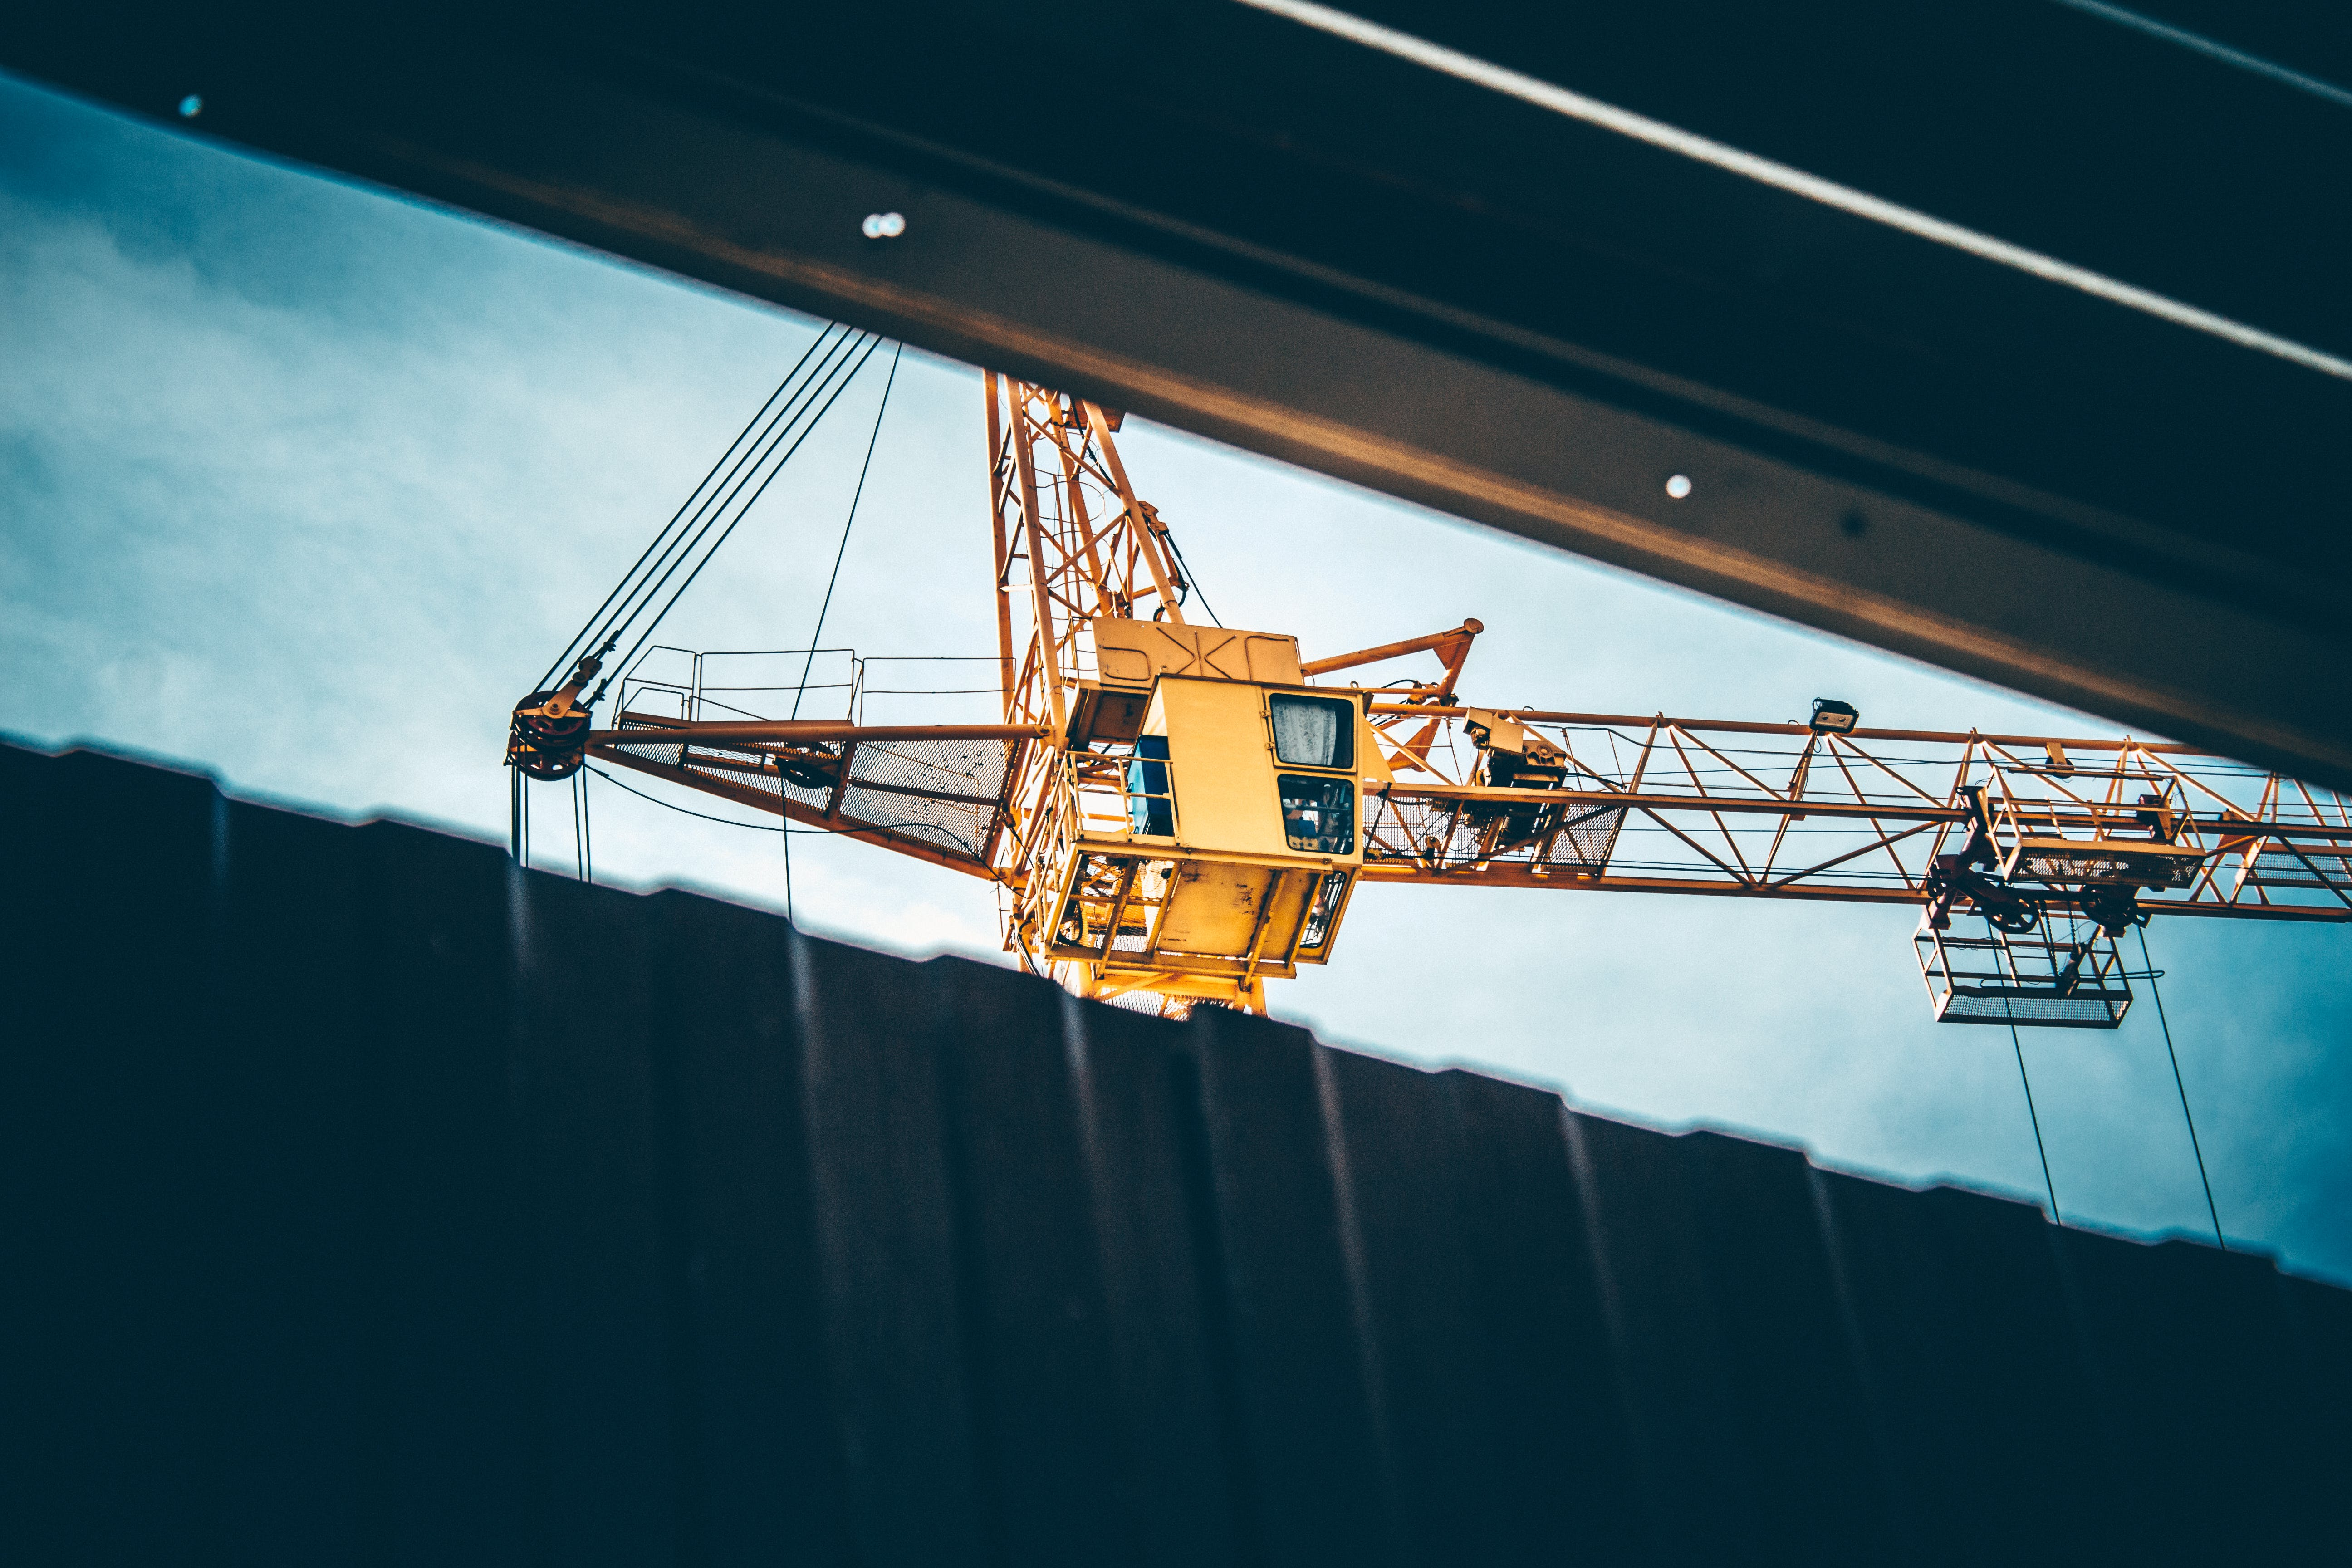 Free stock photo of building, crane, heavy industry, industrial